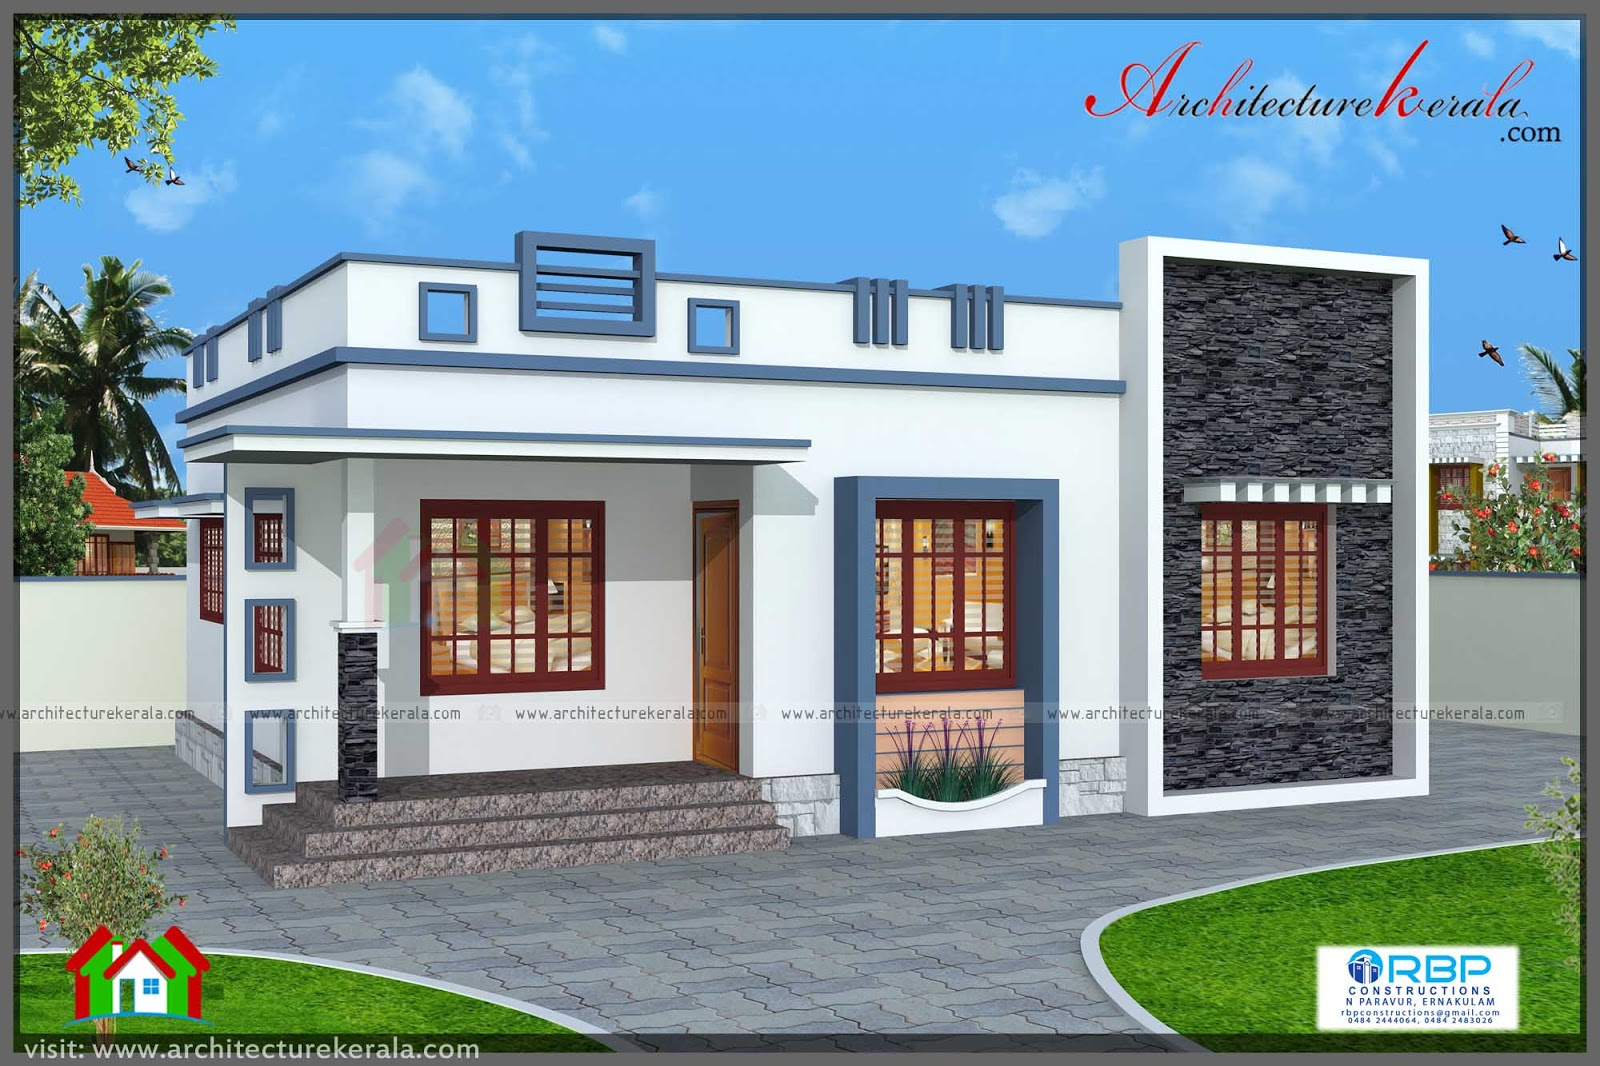 760 square feet 3 bedroom house plan architecture kerala for 3 bed room home